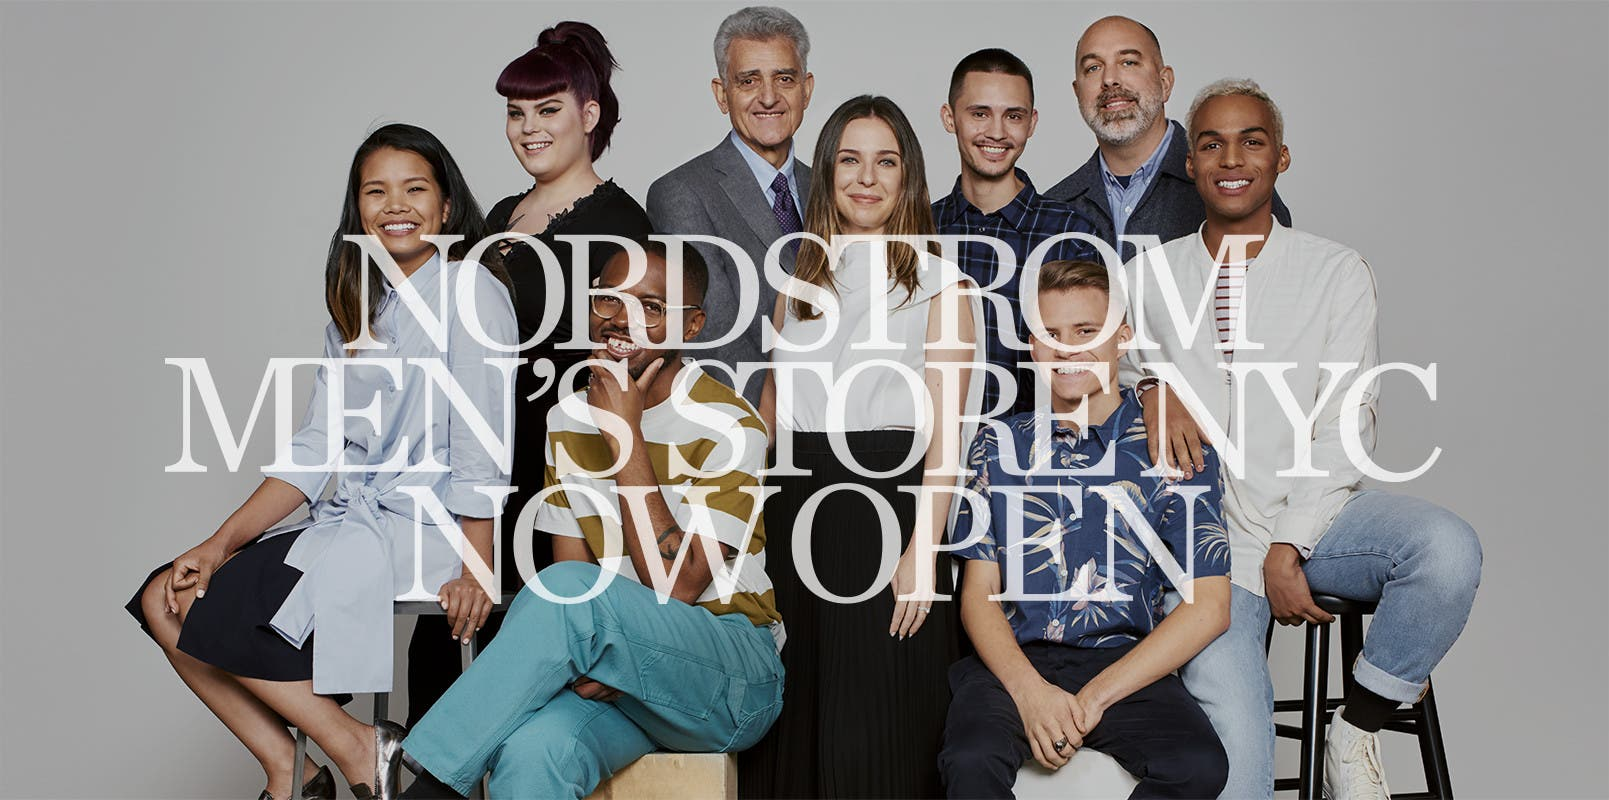 Nordstrom Men's Store NYC: Now Open!